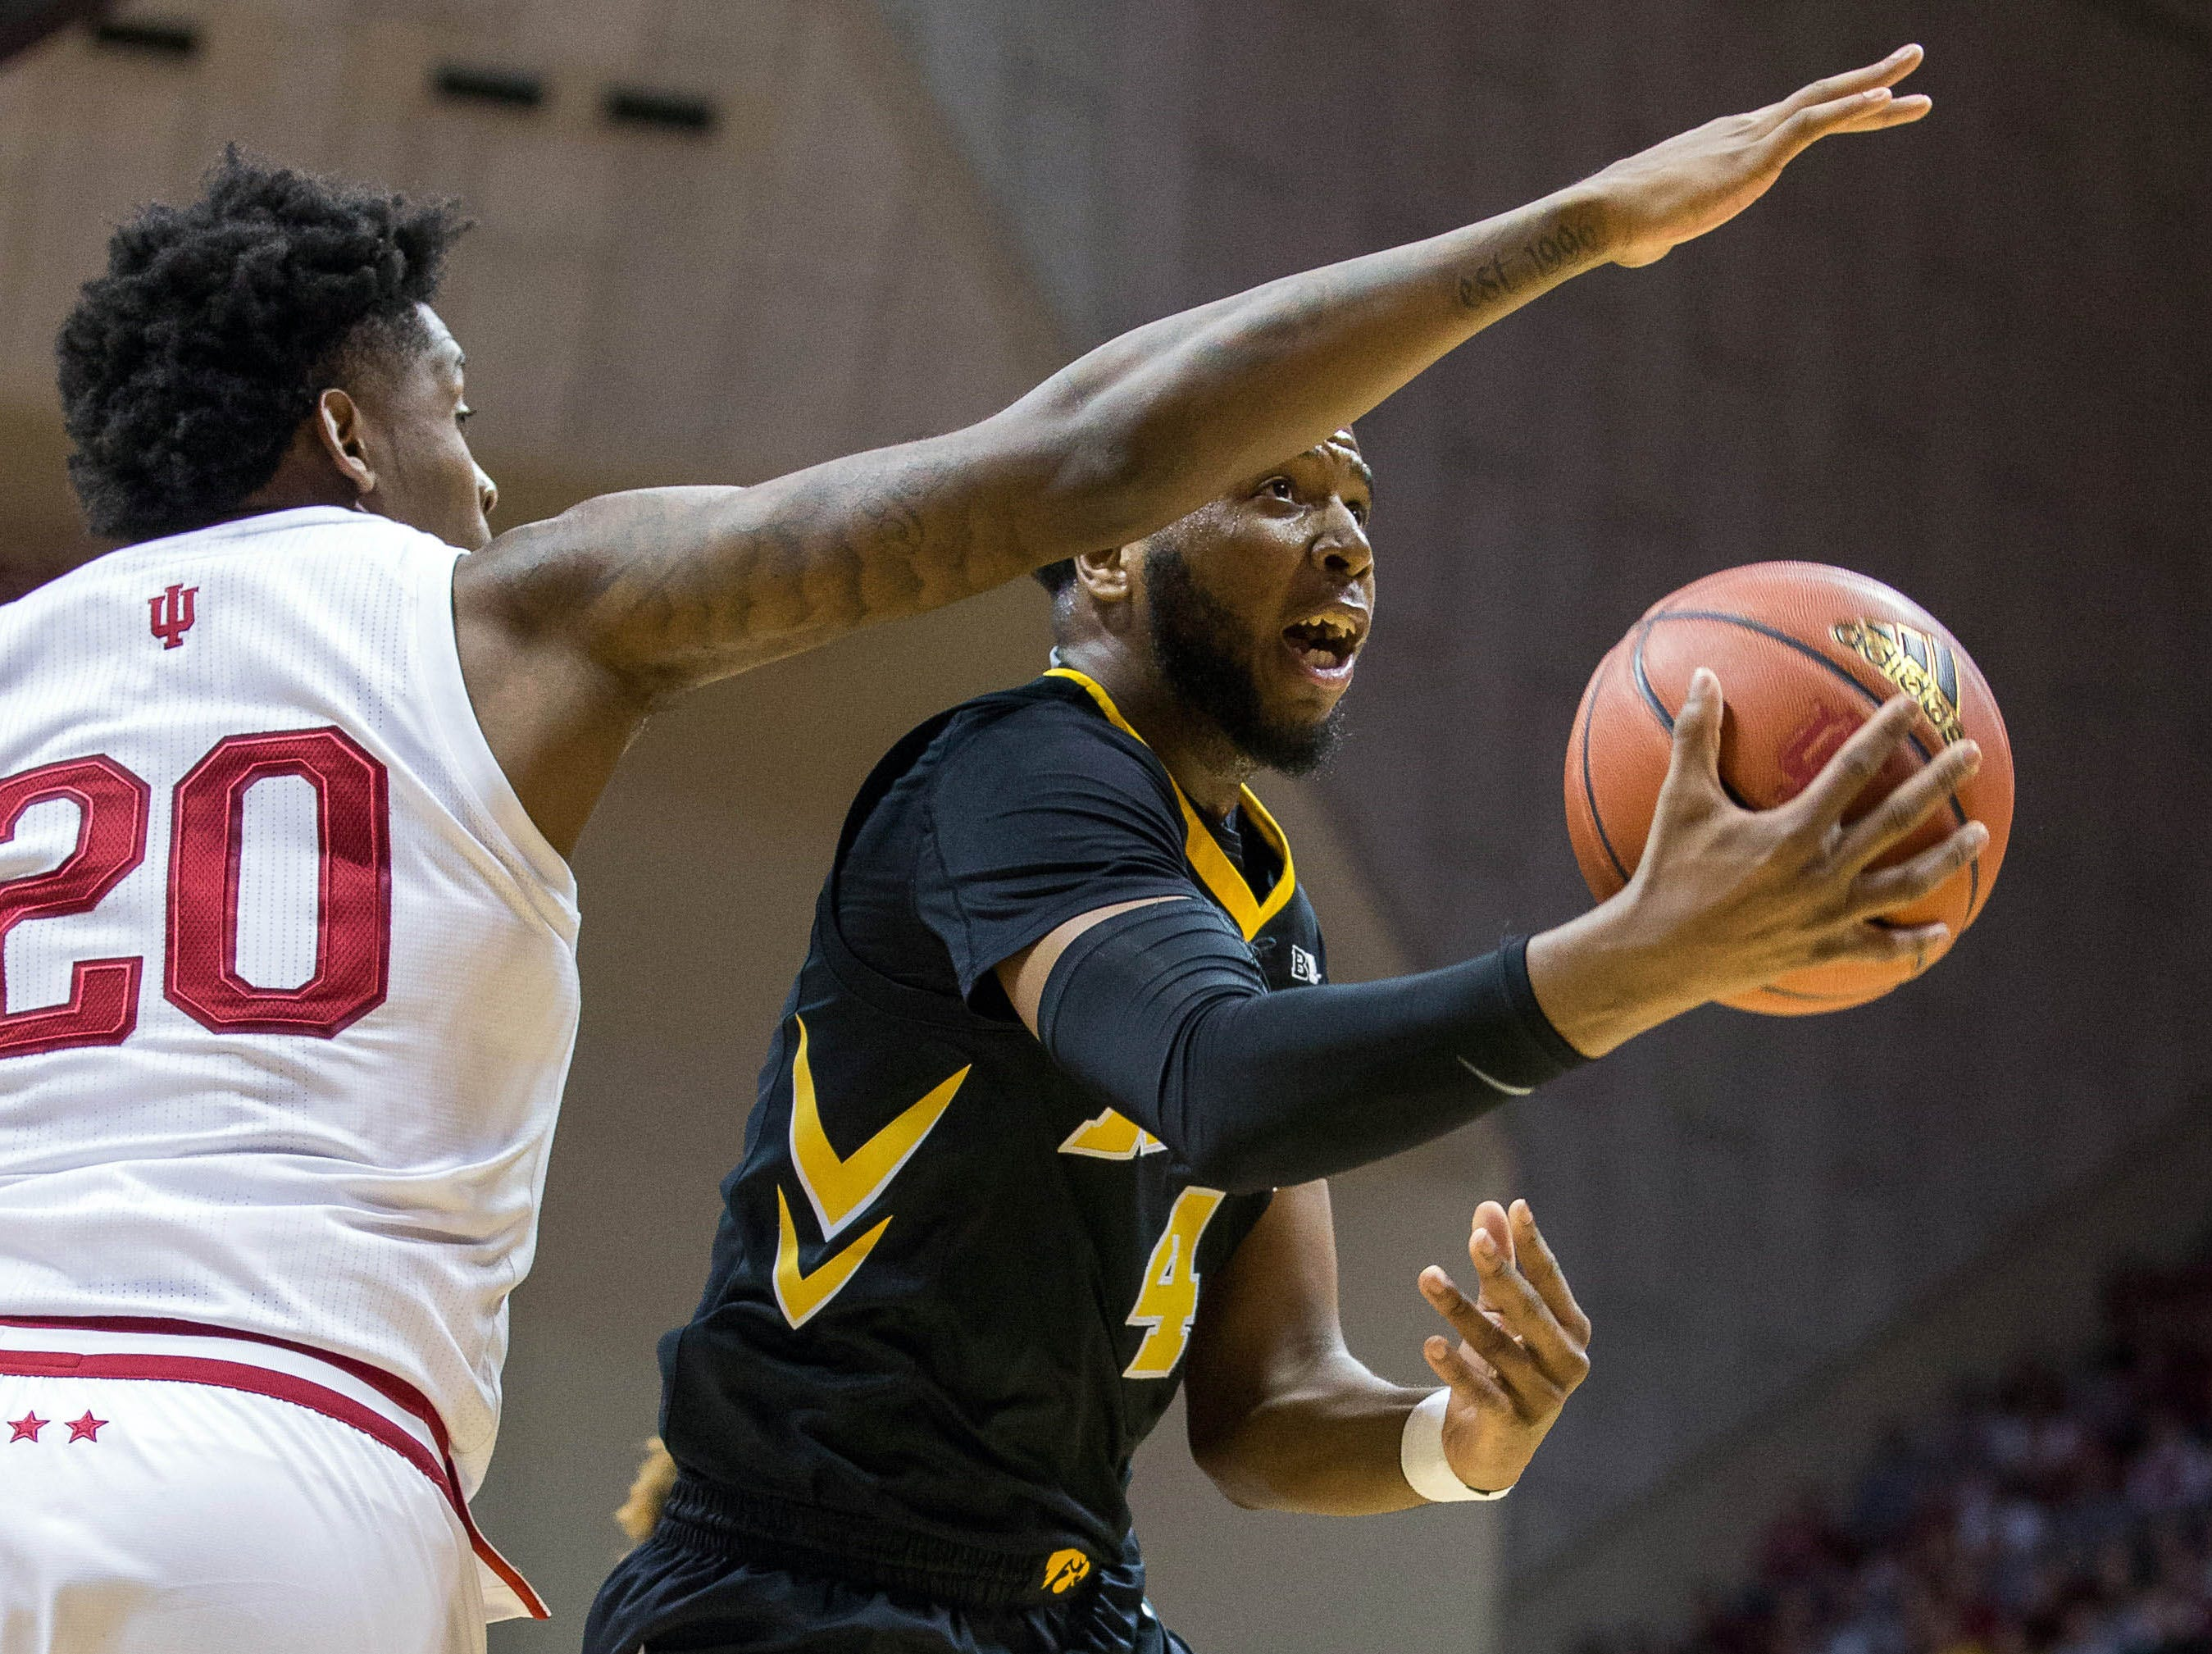 Iowa Hawkeyes guard Isaiah Moss (4) shoots the ball while Indiana Hoosiers forward De'Ron Davis (20) defends in the second half at Assembly Hall. Mandatory Credit: Trevor Ruszkowski-USA TODAY Sports